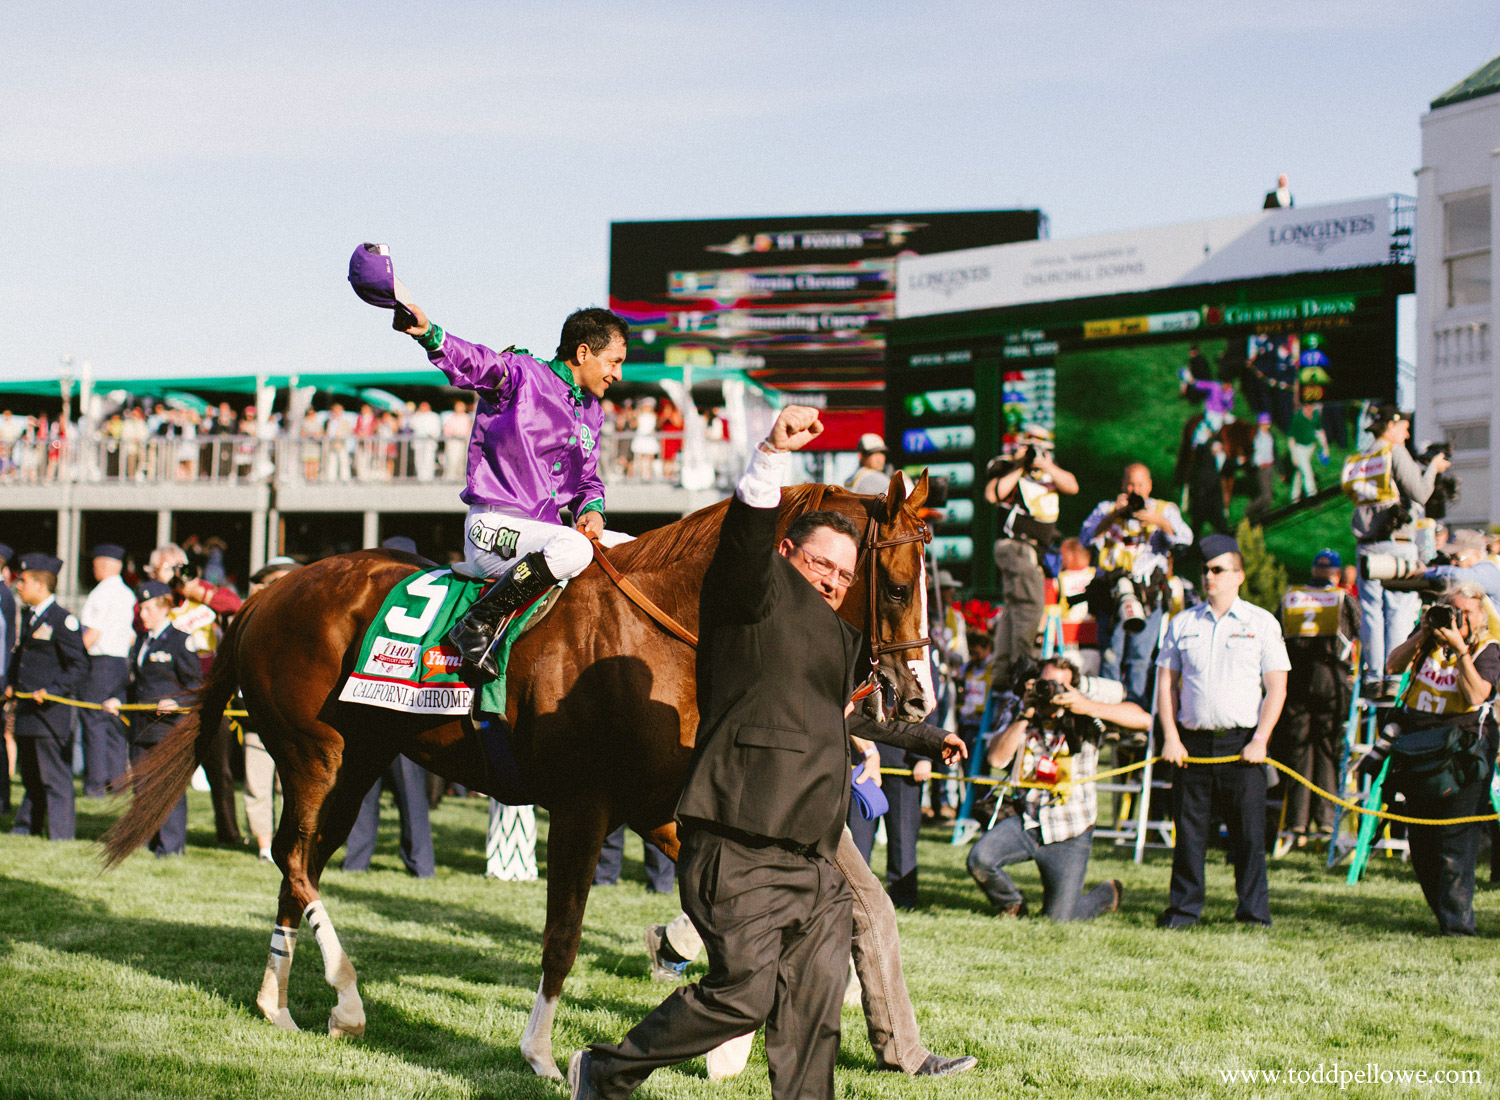 82-kentucky-derby-140-2014-402.jpg